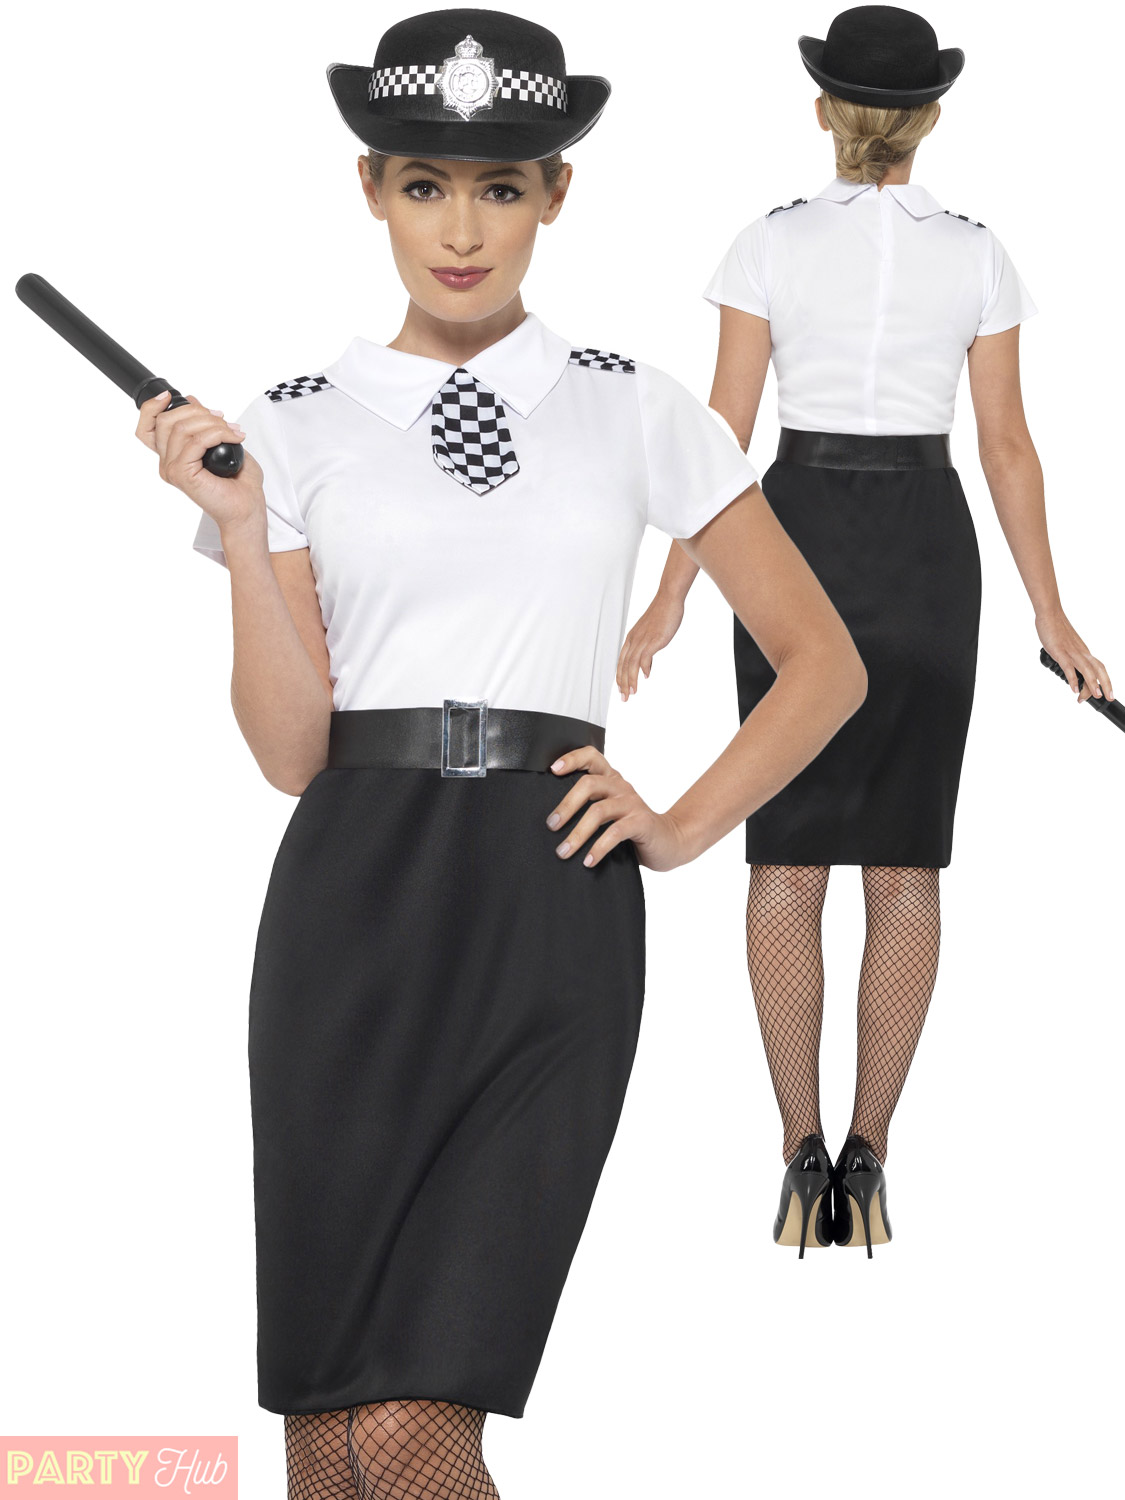 Ladies-Police-Lady-Officer-Costume-Women-Cop-Fancy-  sc 1 st  eBay & Ladies Police Lady Officer Costume Women Cop Fancy Dress Outfit ...